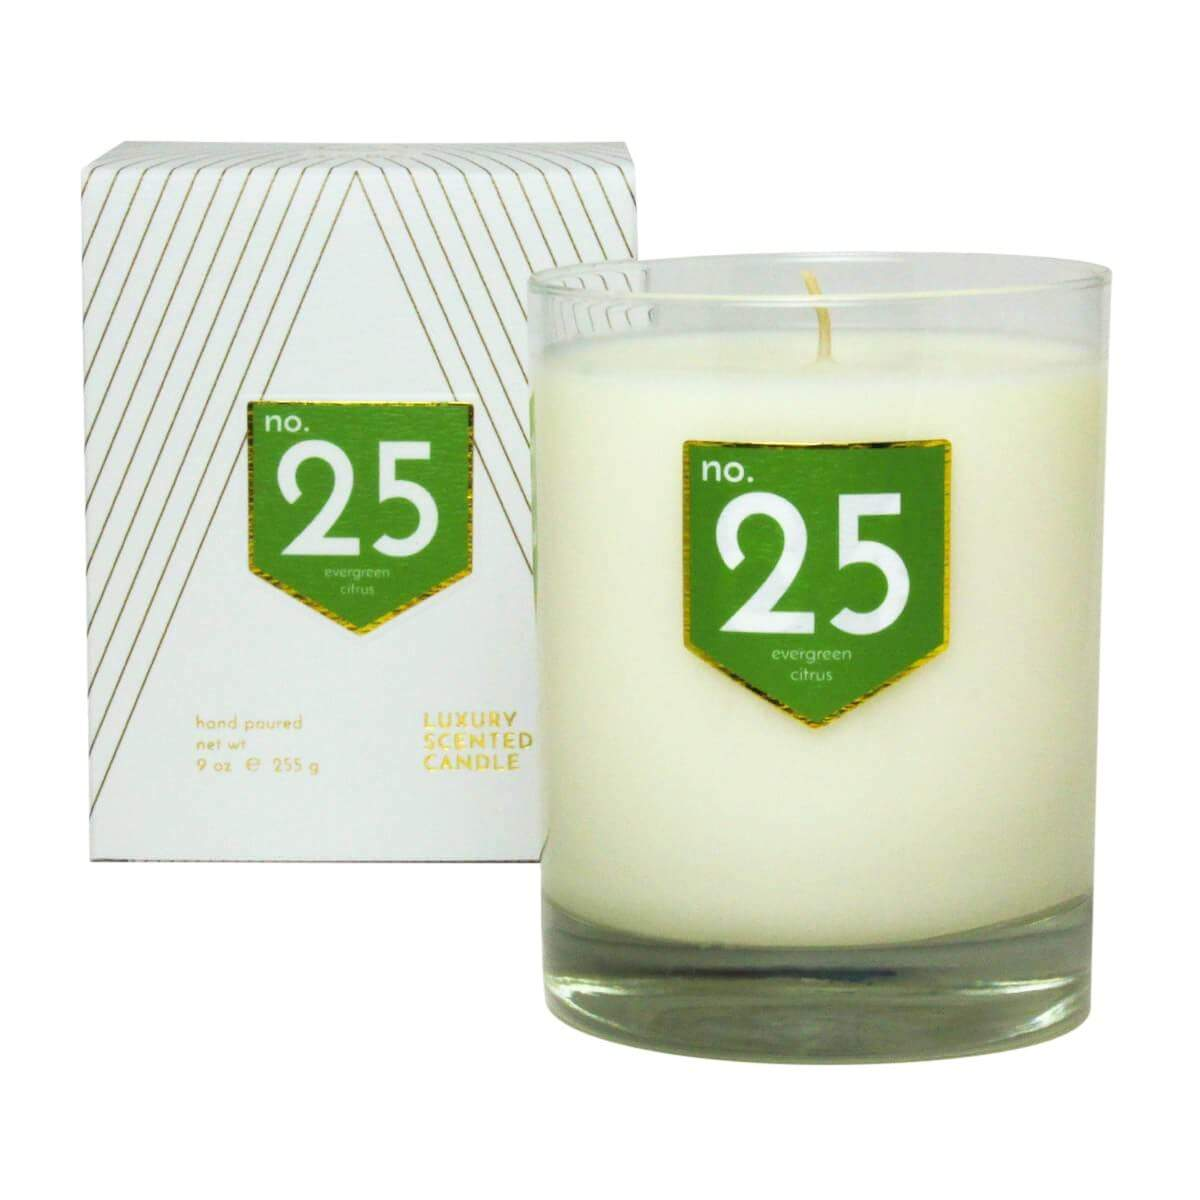 ACDC Candle Co Candles & Diffusers No. 25 Evergreen Citrus Scented Soy Candle